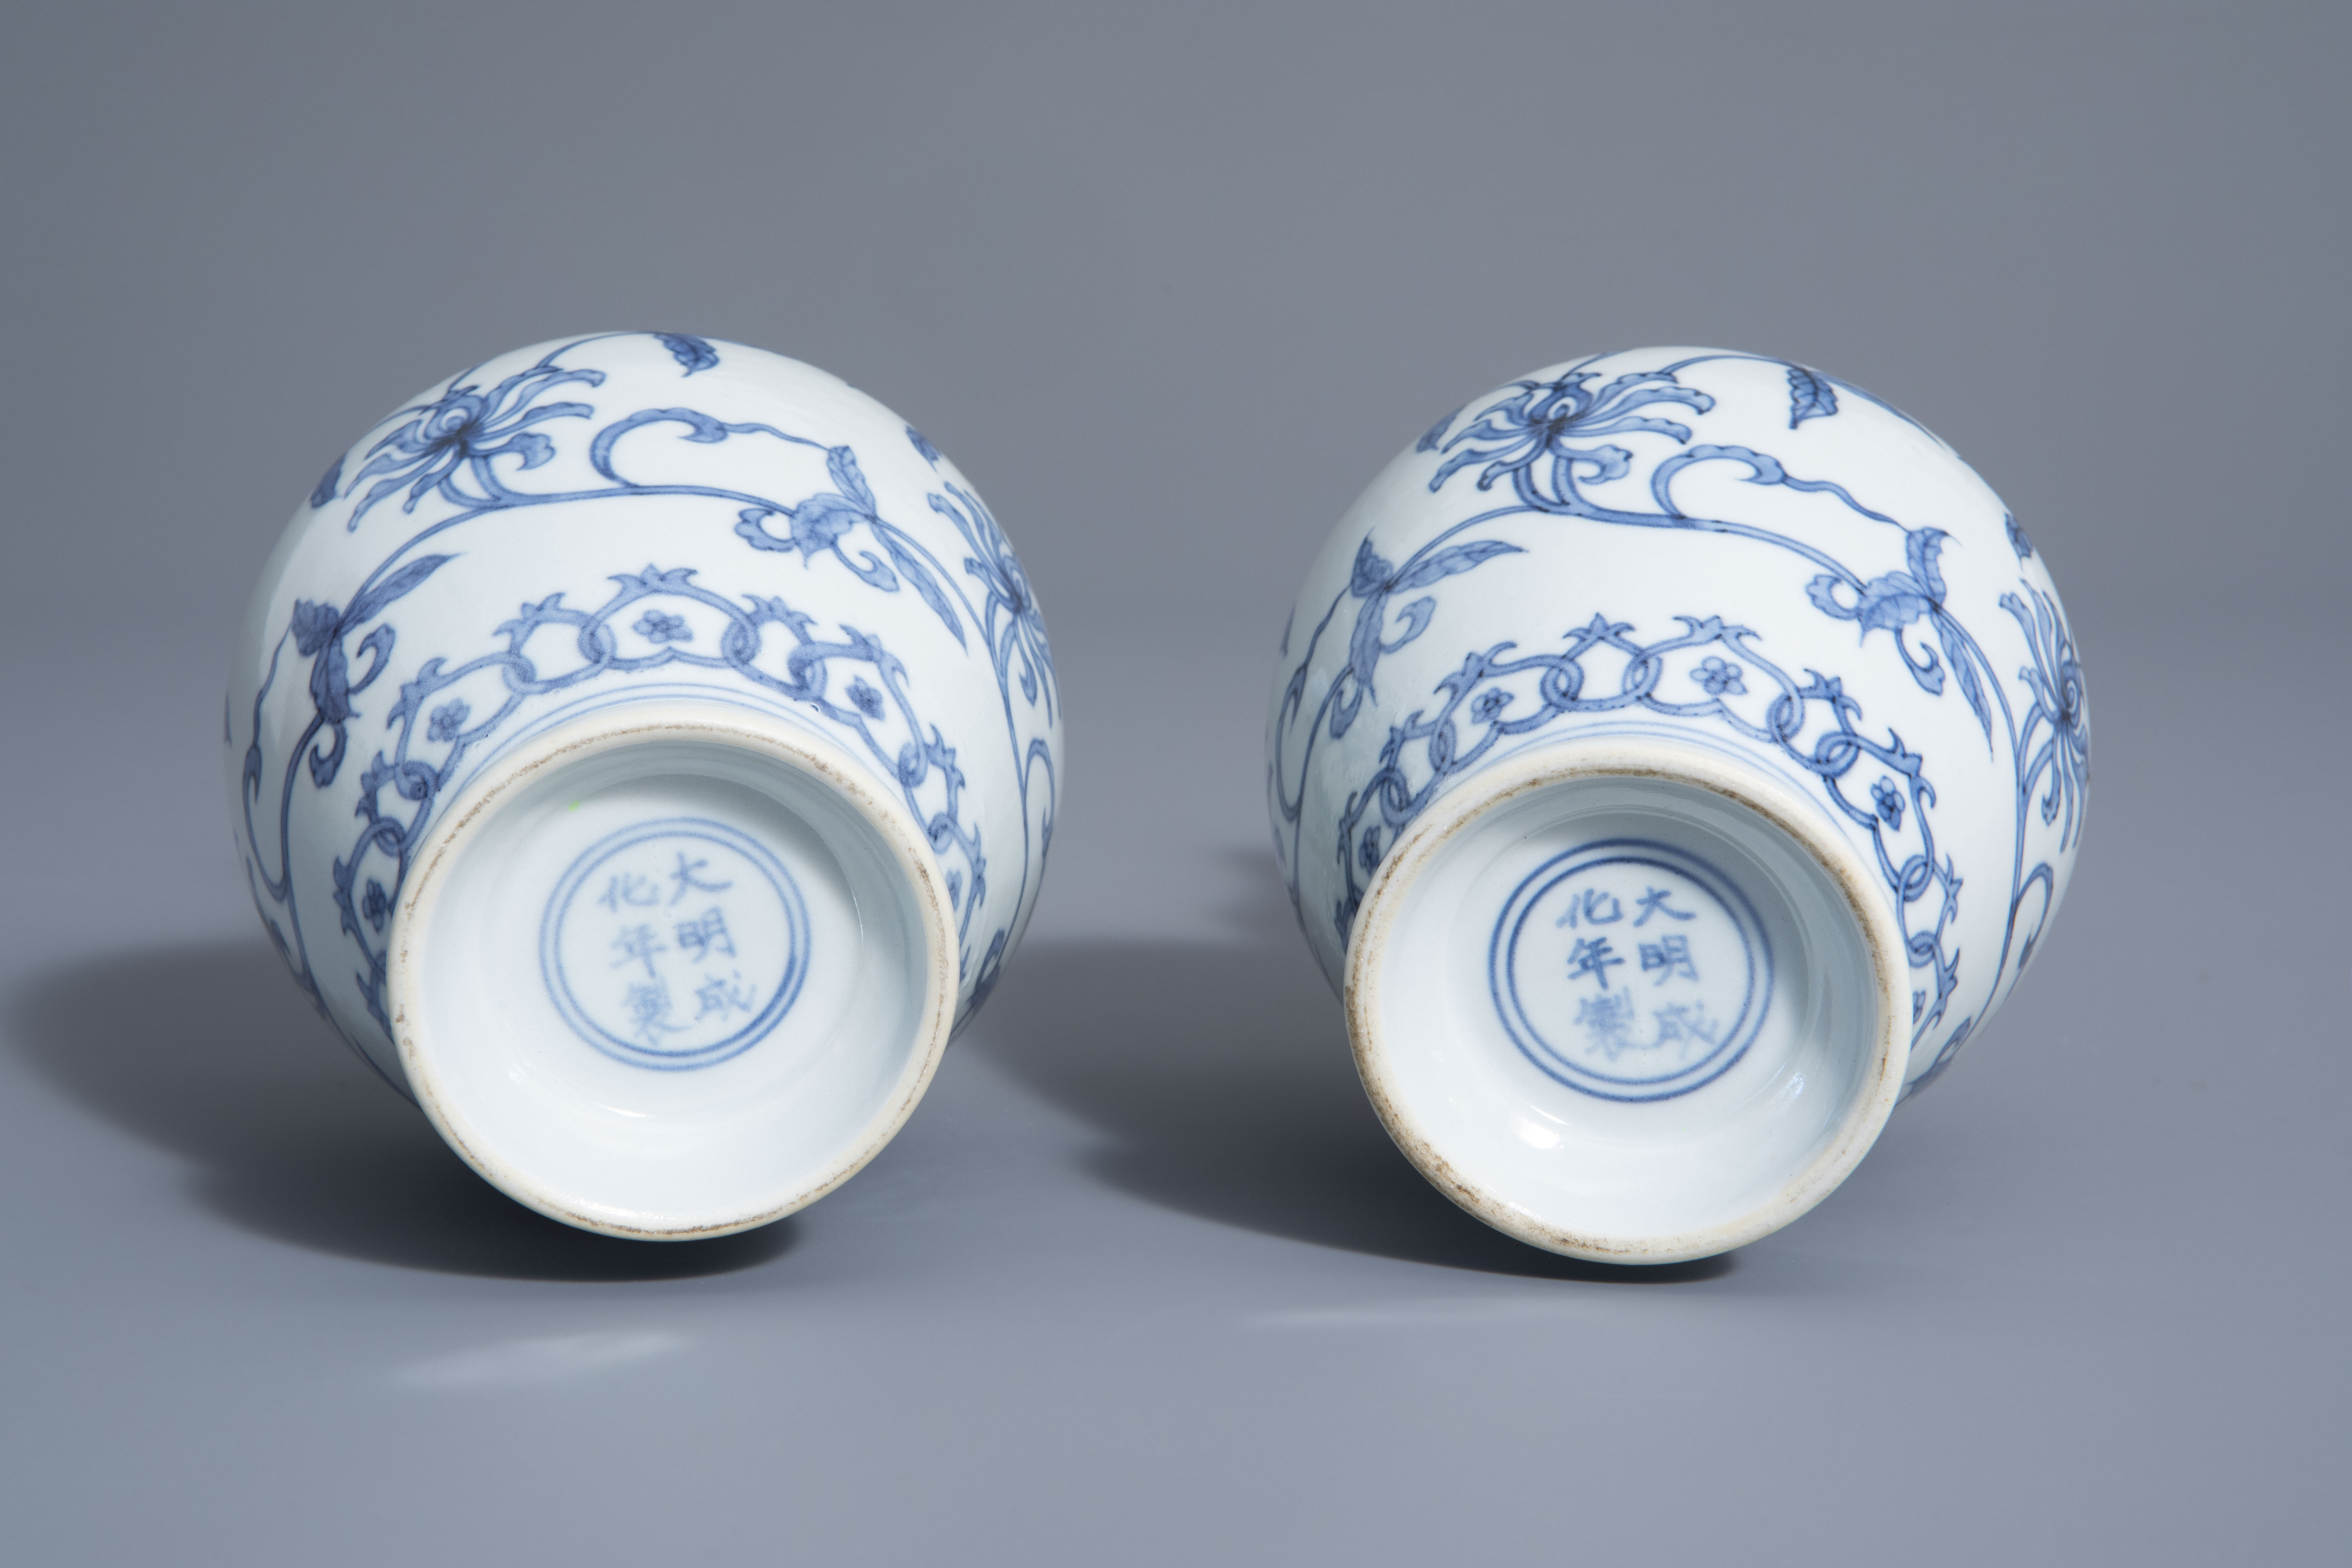 A pair of Chinese blue and white vases with floral design, Chenghua mark, 19th/20th C. - Image 6 of 6